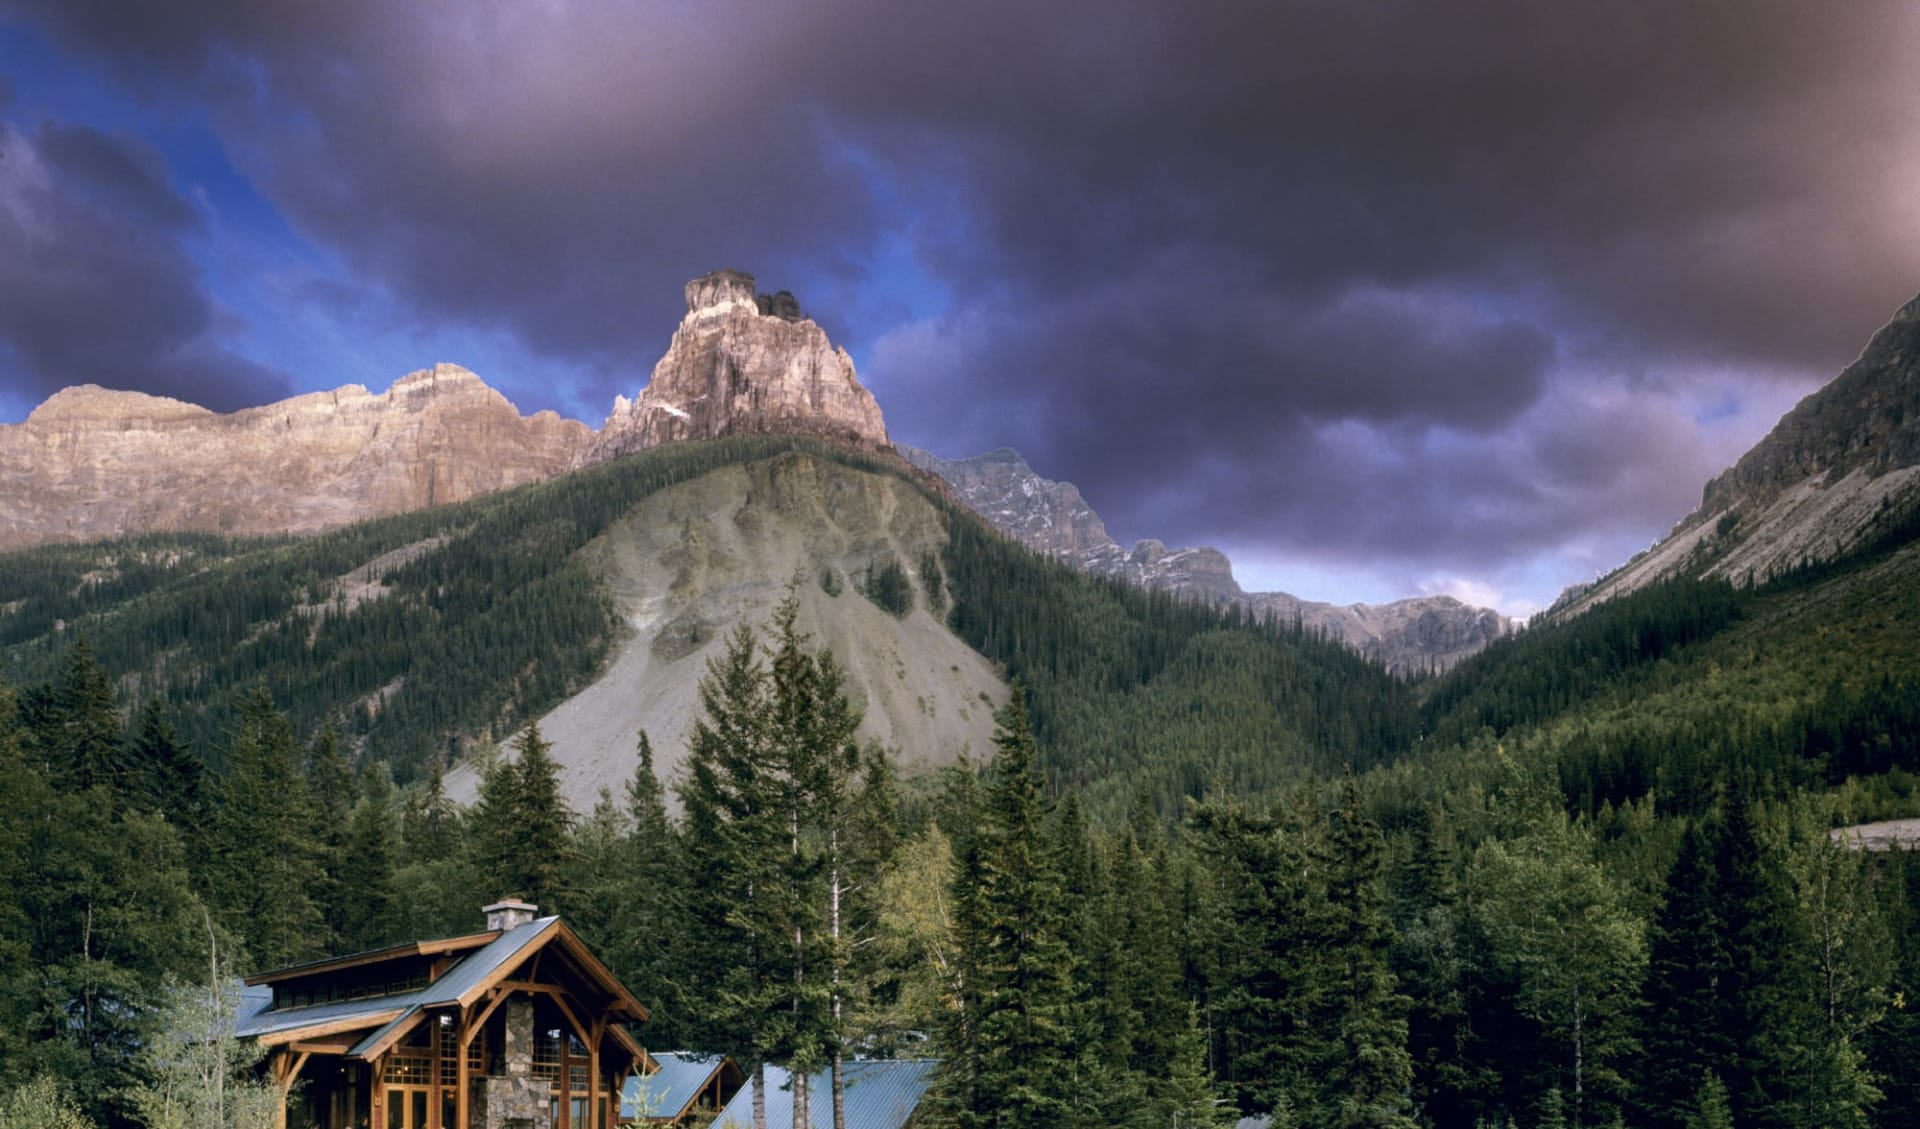 Cathedral Mountain Lodge in Field:  Cathedral Mountain Lodge_AussenansichtMitBergen